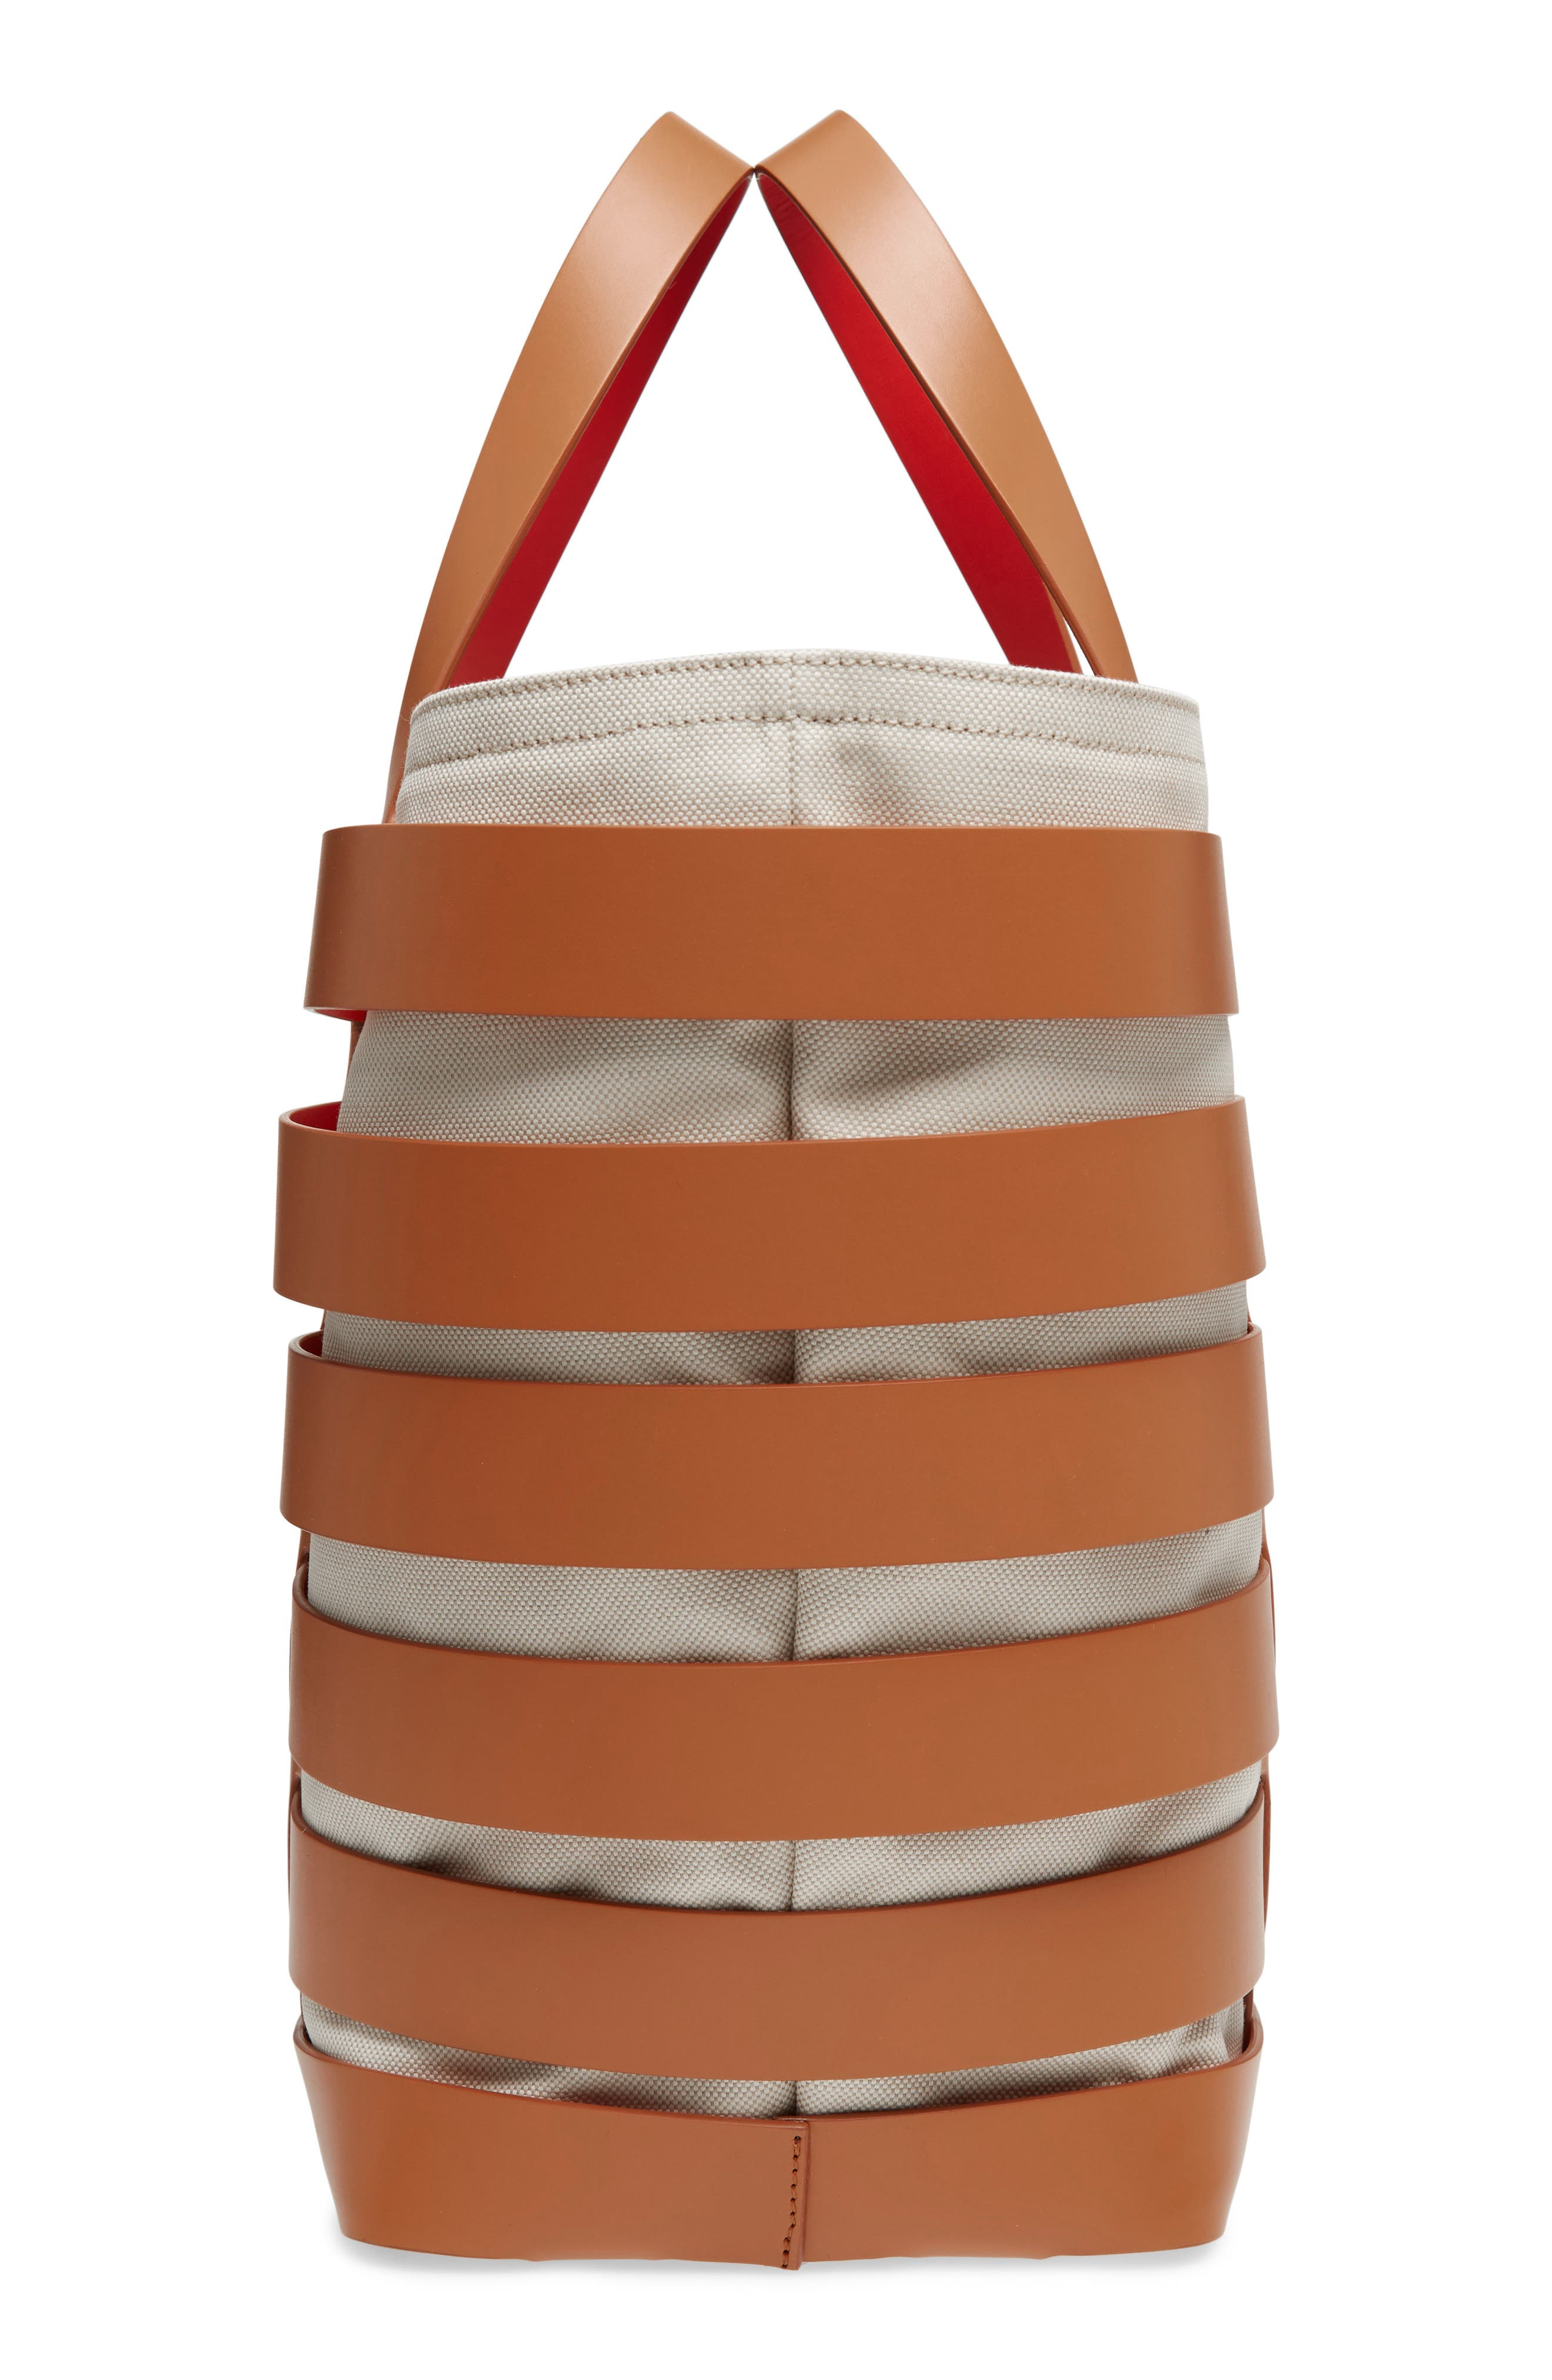 Cage Leather & Canvas Tote,                             Alternate thumbnail 5, color,                             CAMEL